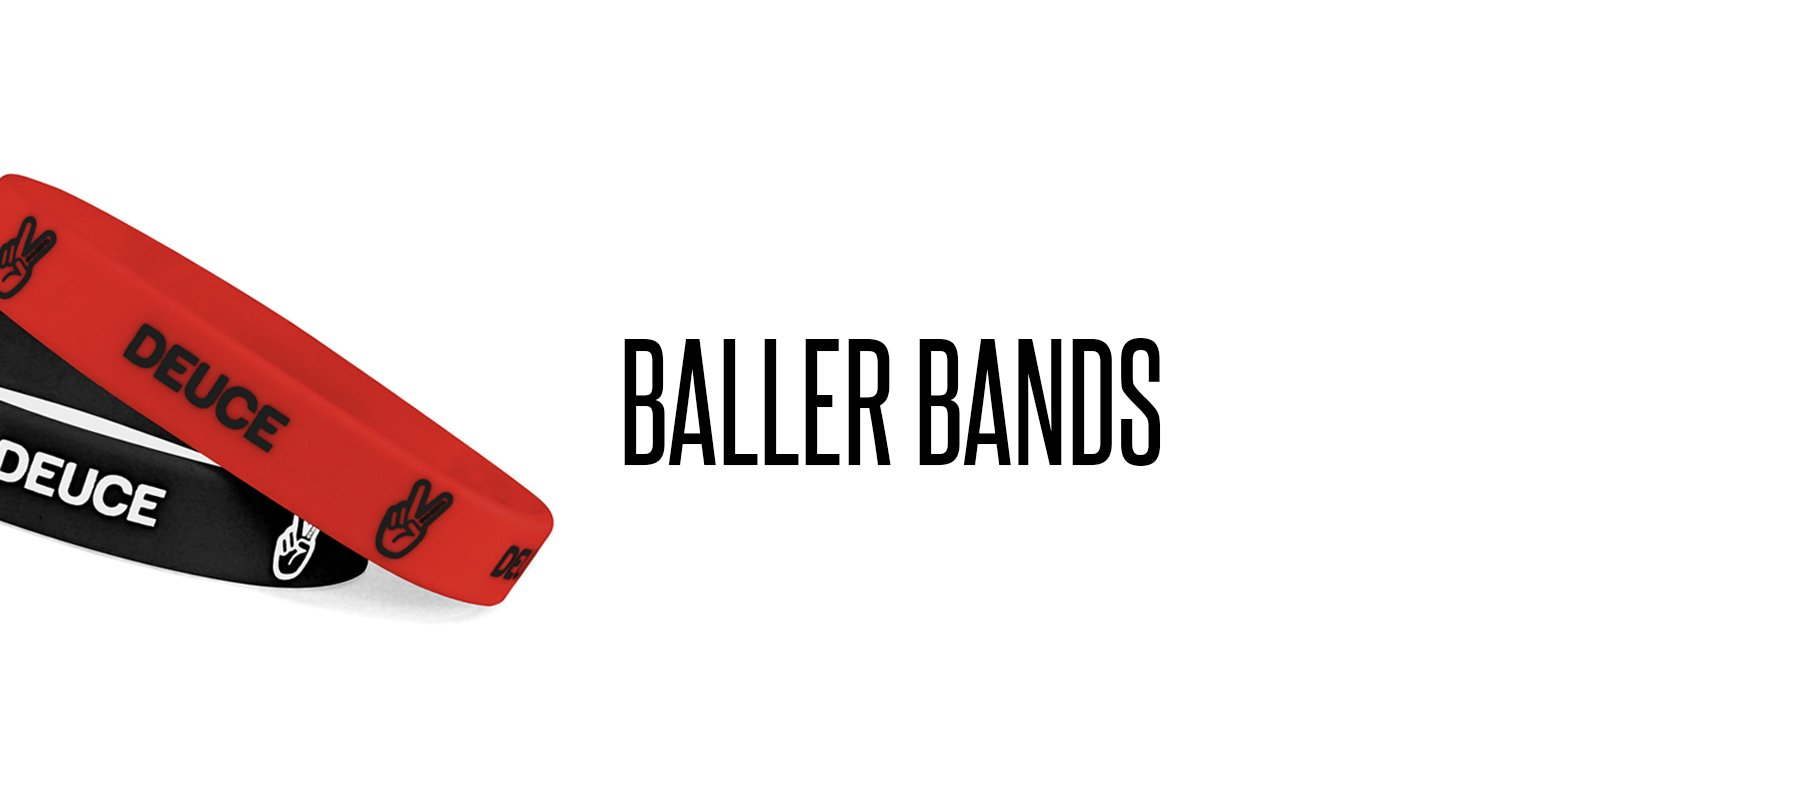 BALLER BAND COLLECTION